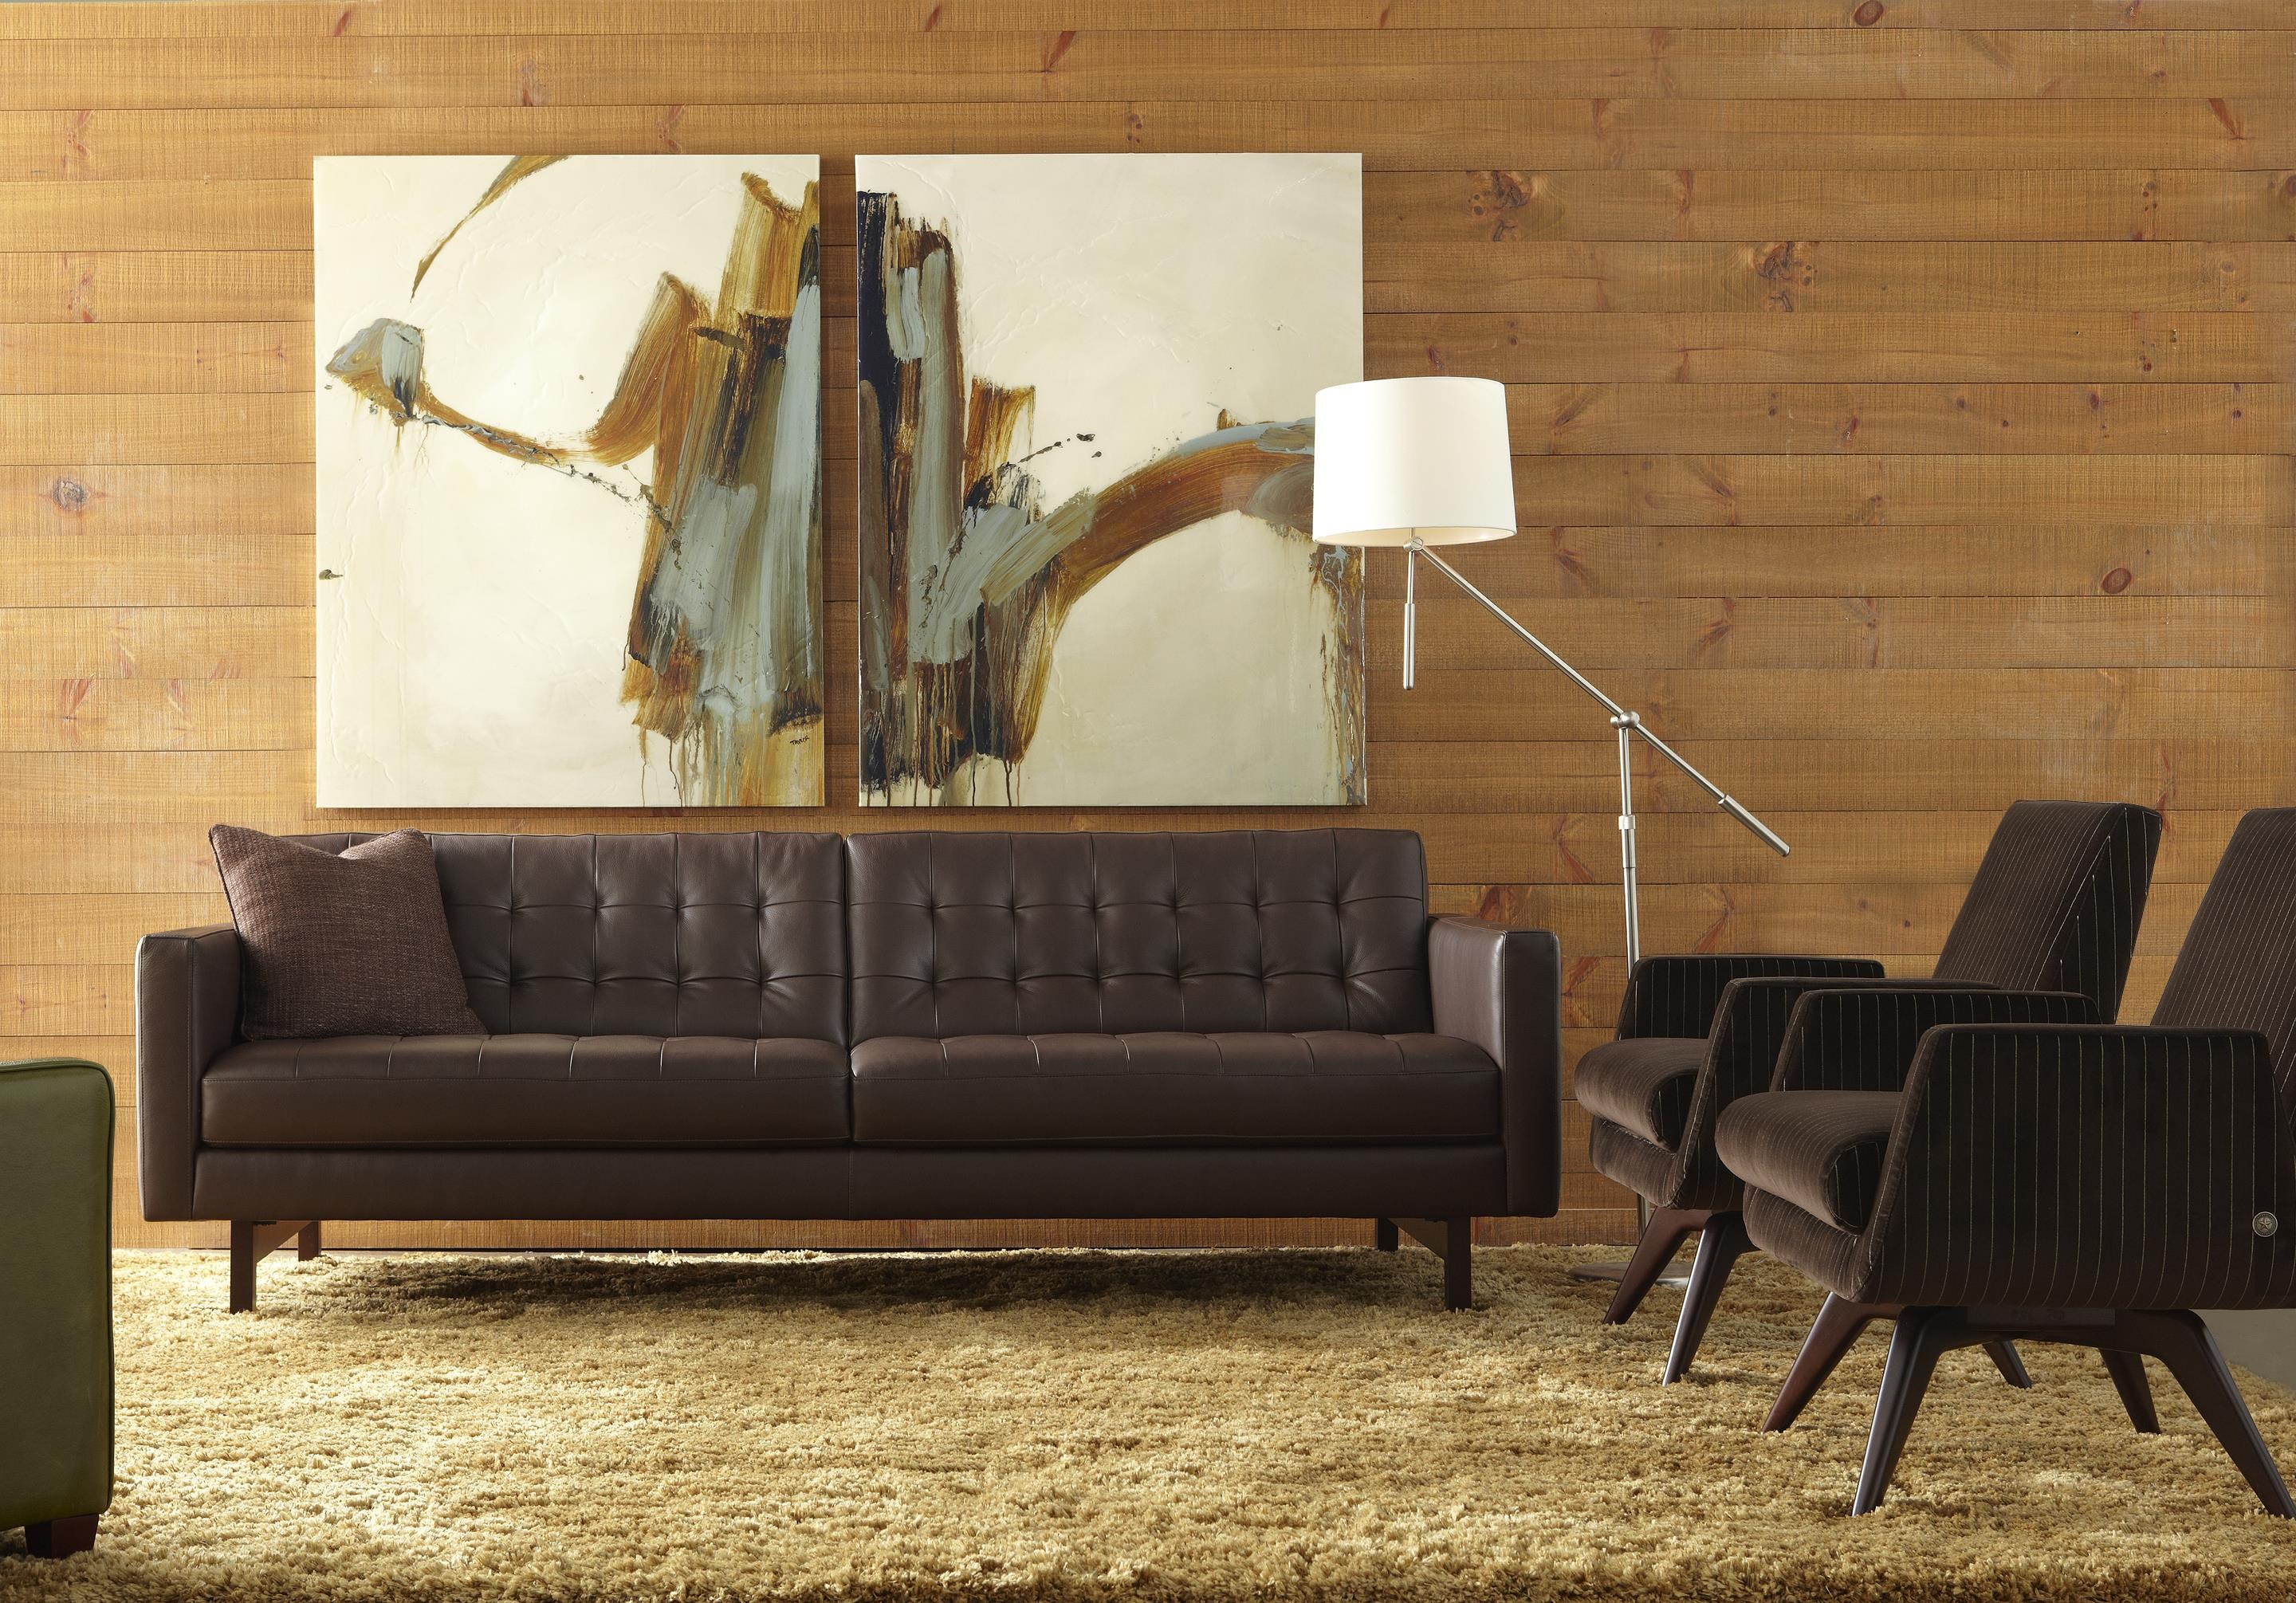 American Leather ParkerSofa; American Leather ParkerSofa